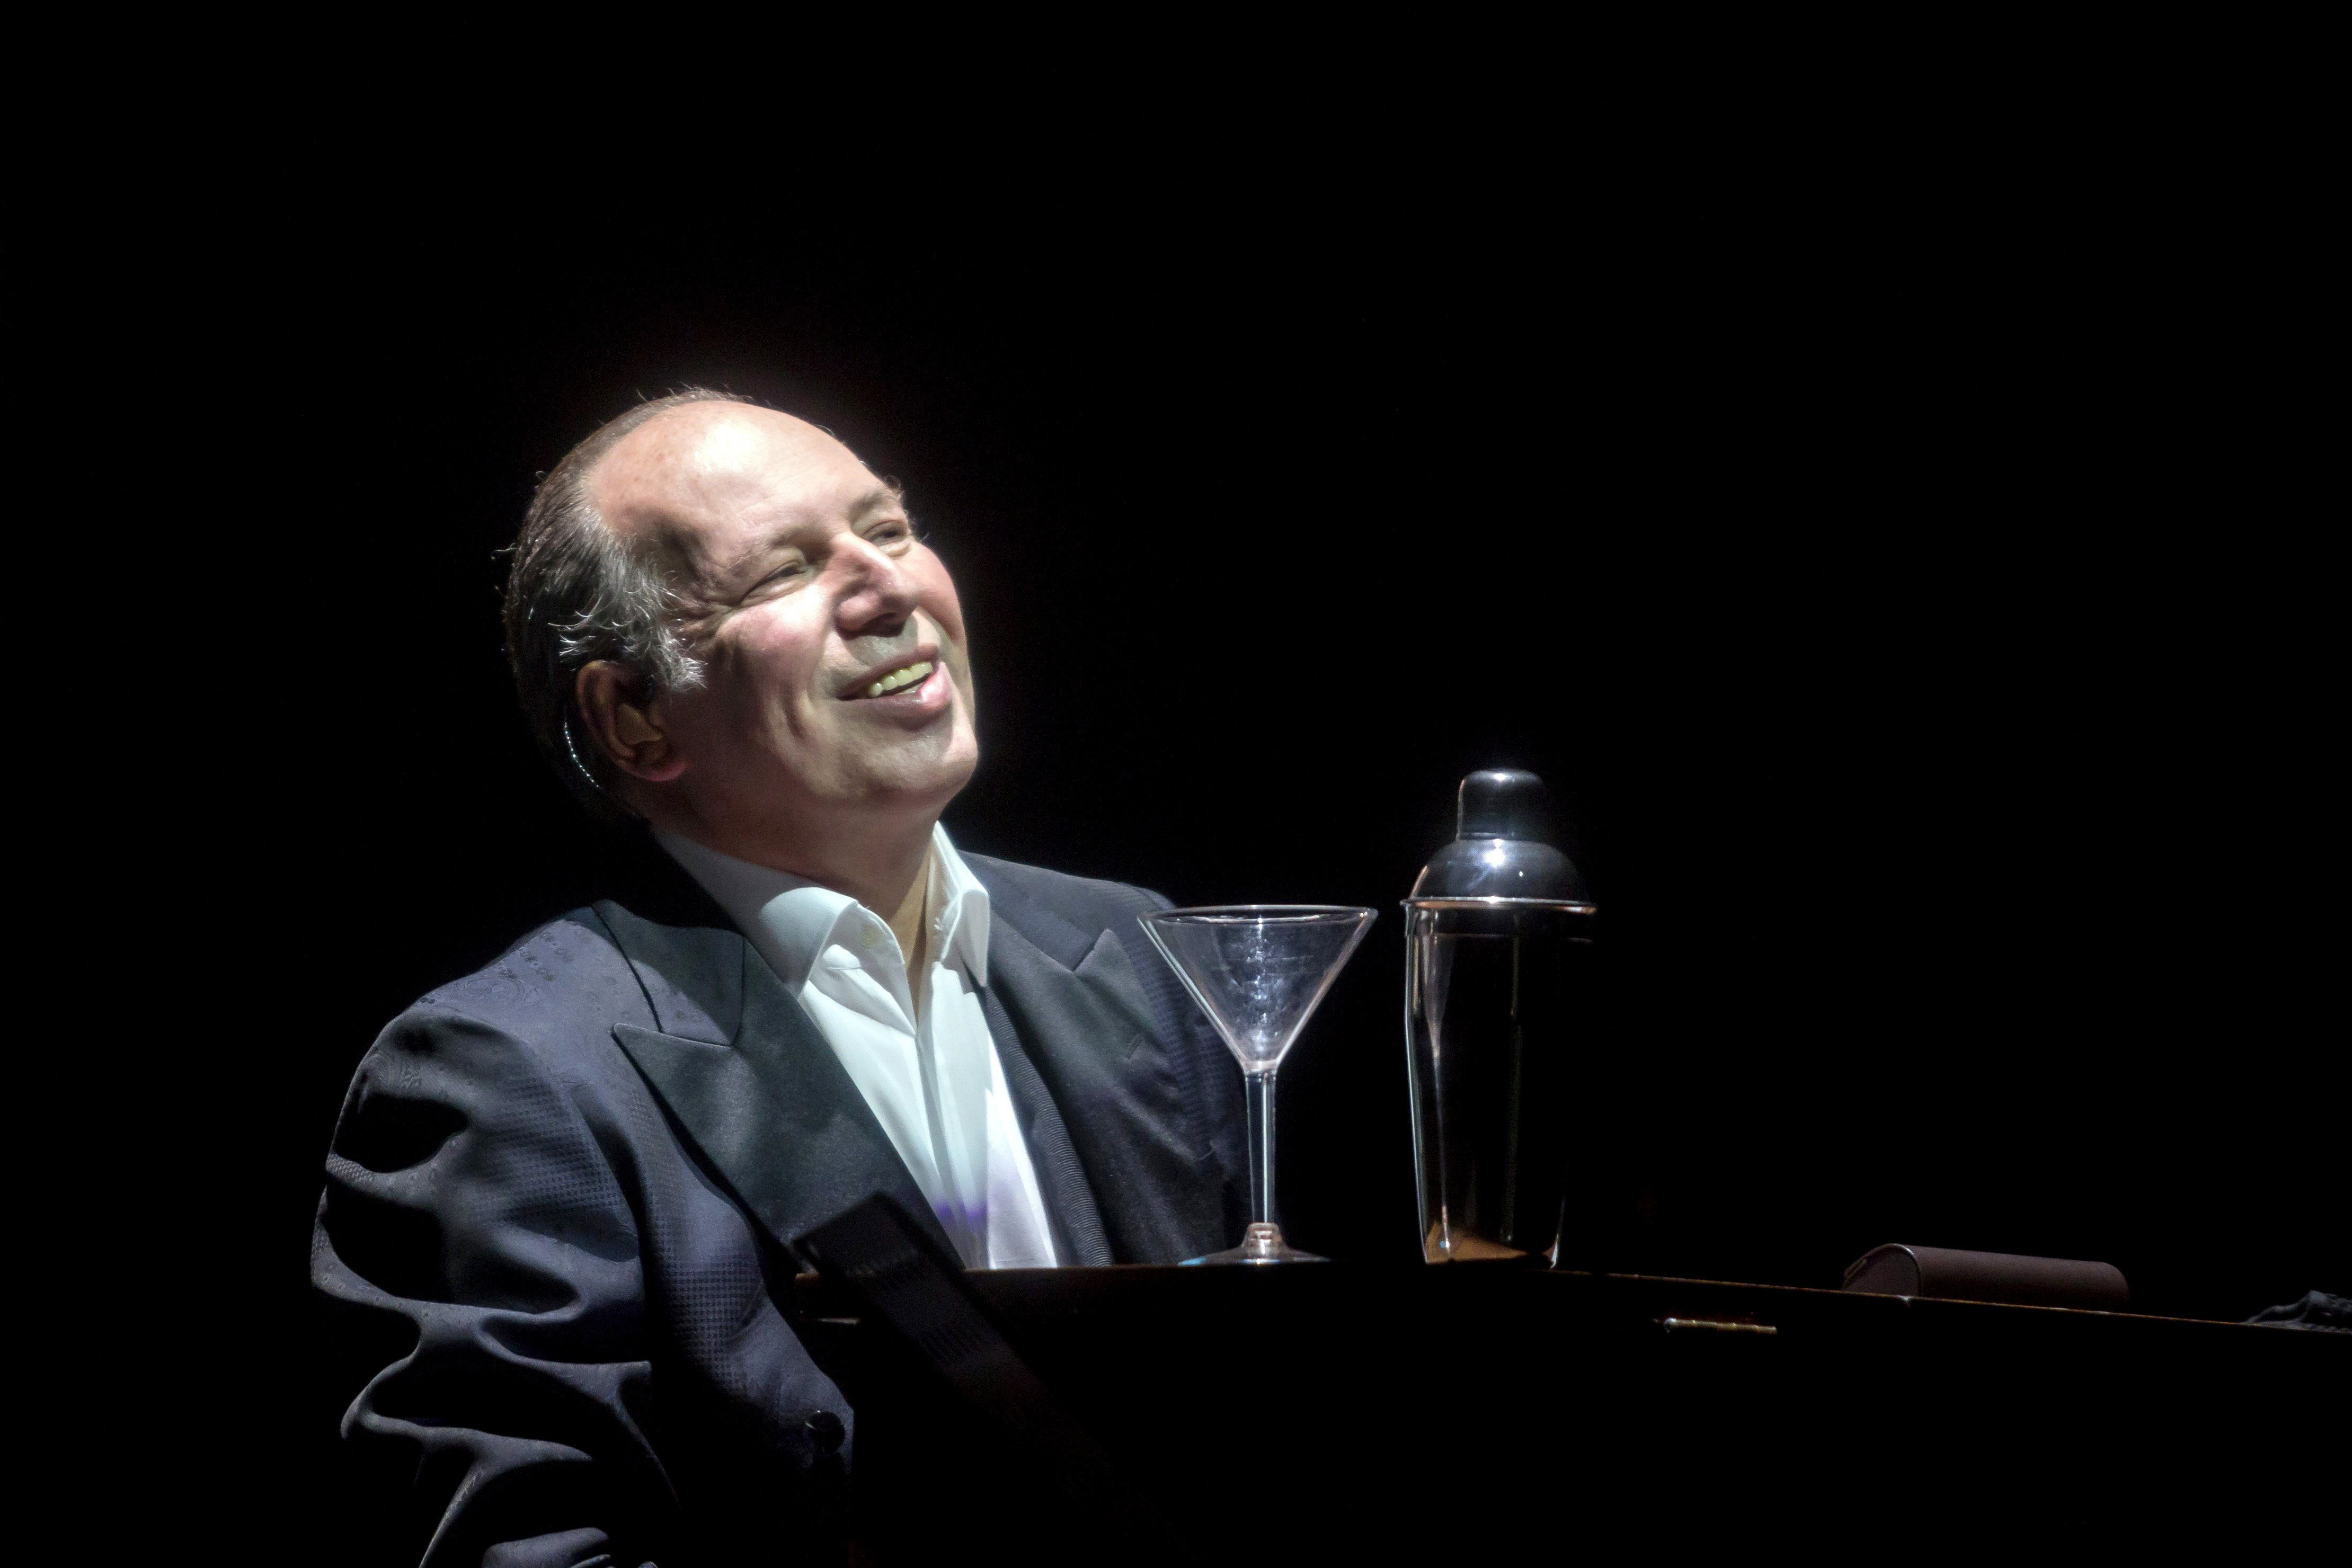 HUNGARY OUTMandatory Credit: Photo by BALAZS MOHAI/EPA/REX/Shutterstock (8854591b) Hans Zimmer Hans Zimmer in concert at the Papp Laszlo, Budapest, Hungary - 01 Jun 2017 German composer Hans Zimmer plays the piano as he performs during his concert.